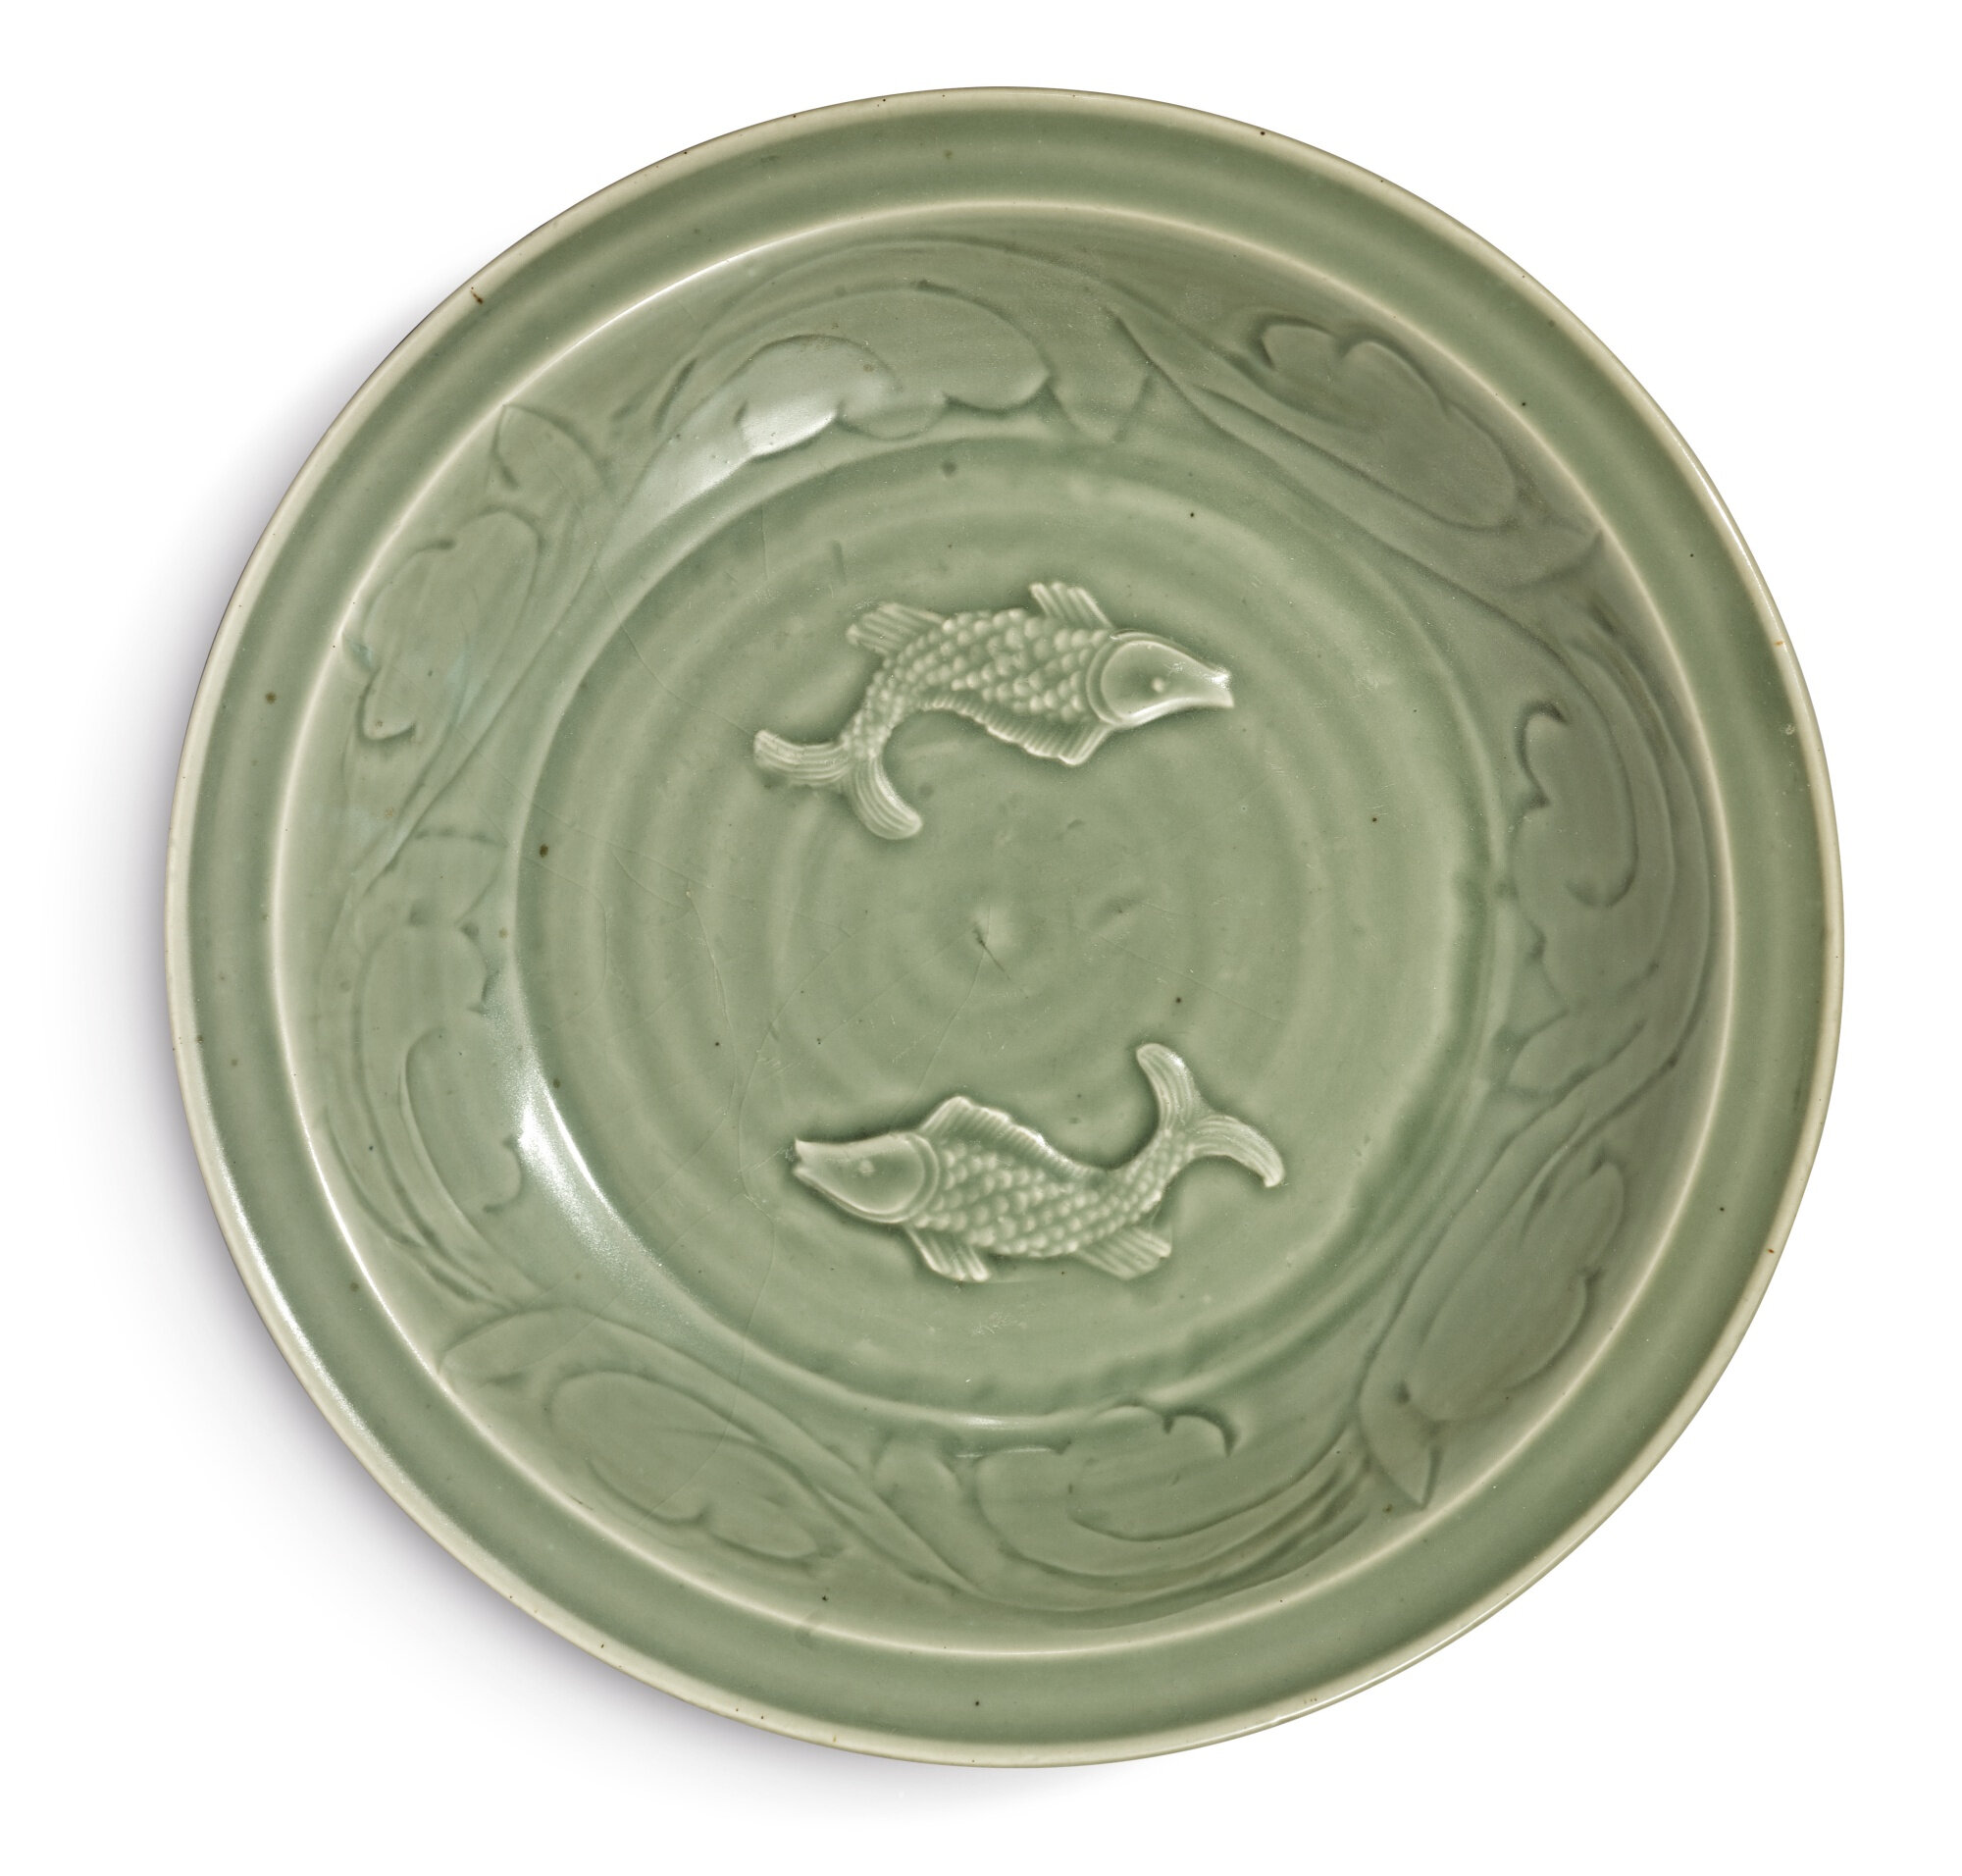 A large celadon-glazed 'Longquan' 'Twin fish' charger, Yuan dynasty (1279-1368)